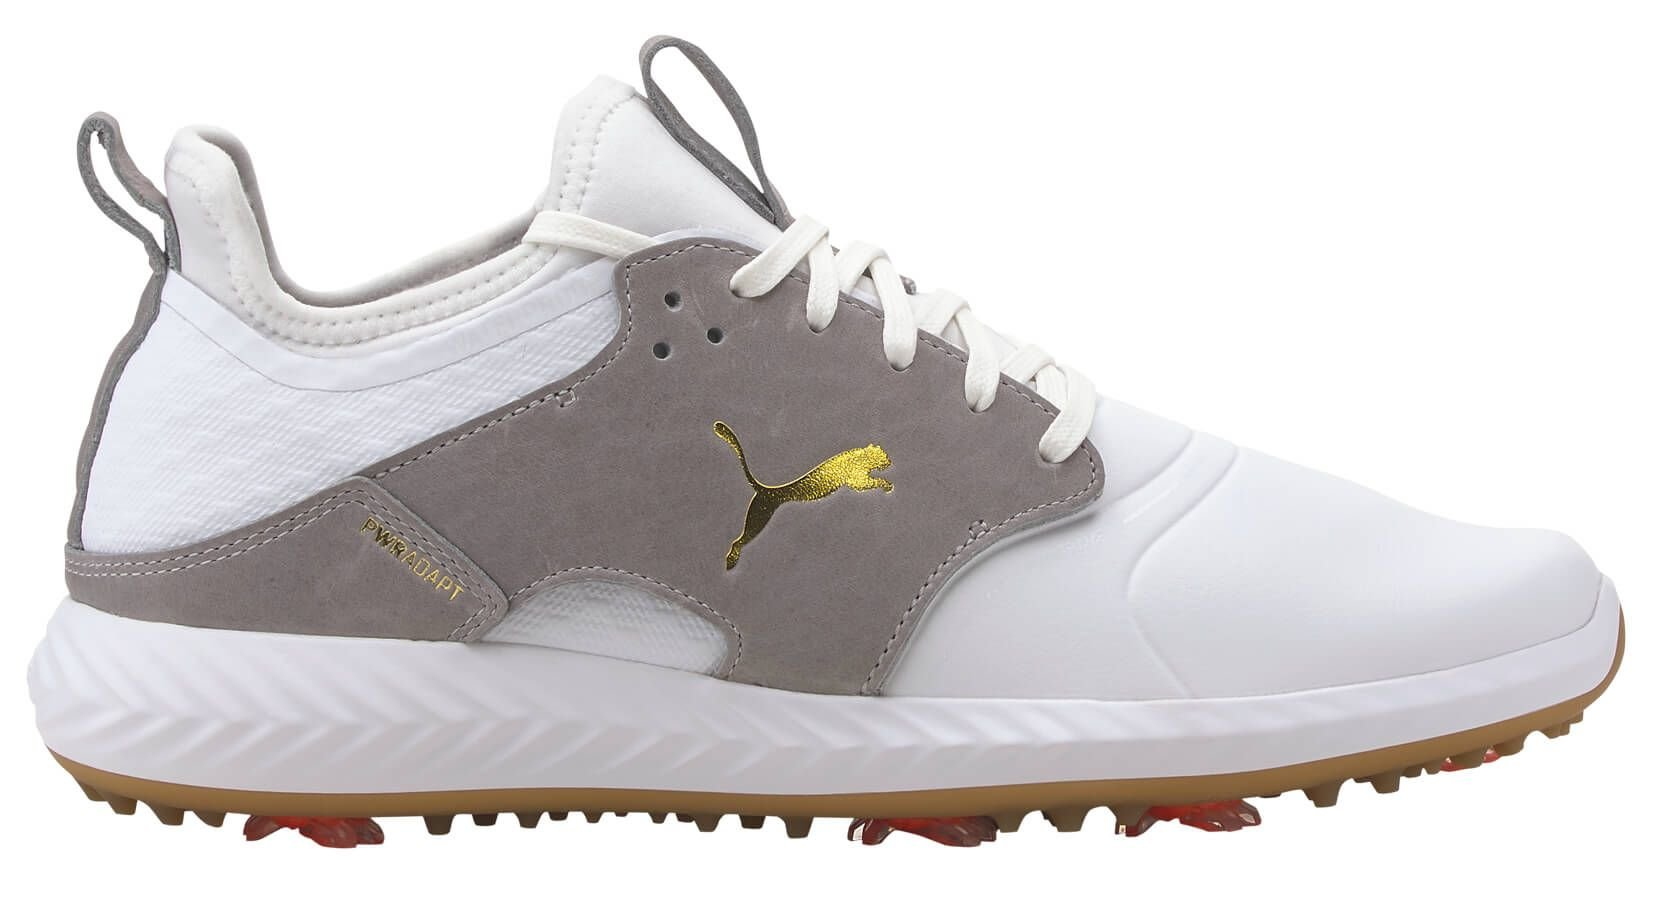 Puma IGNITE PWRADAPT Caged Crafted Golf Shoes 2021 White/High Rise ...